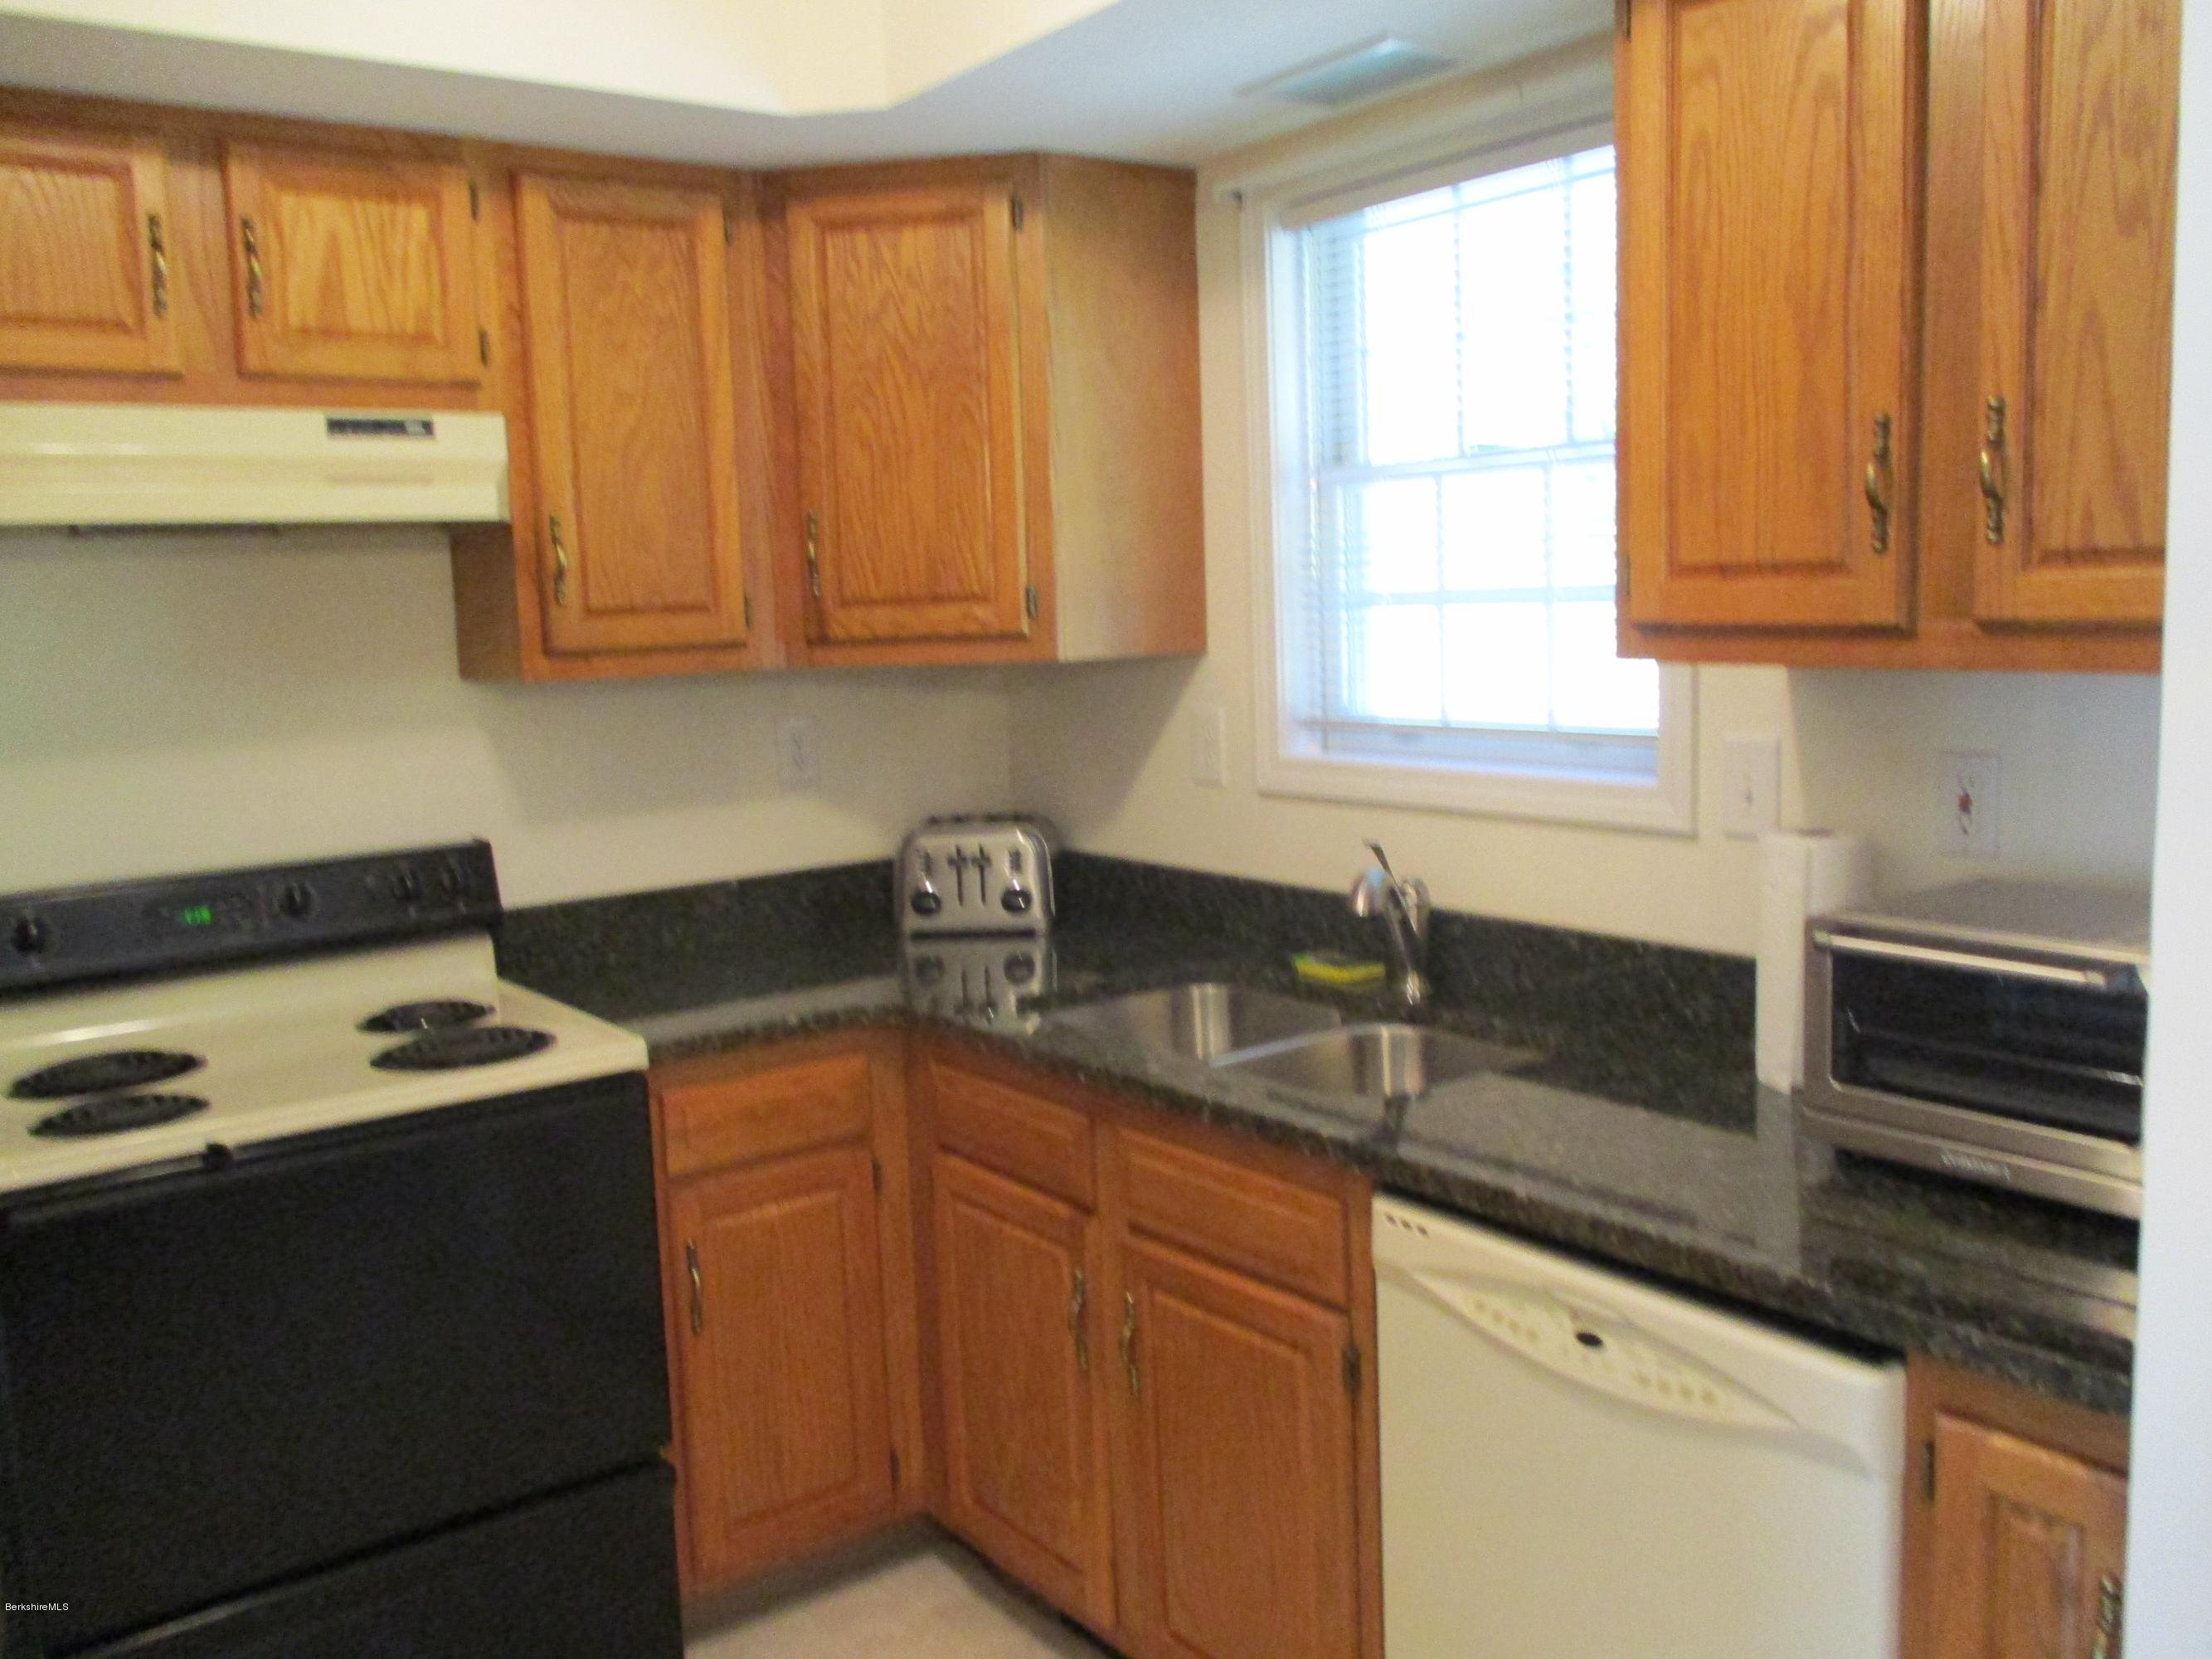 Unit 1 Granite Kitchen